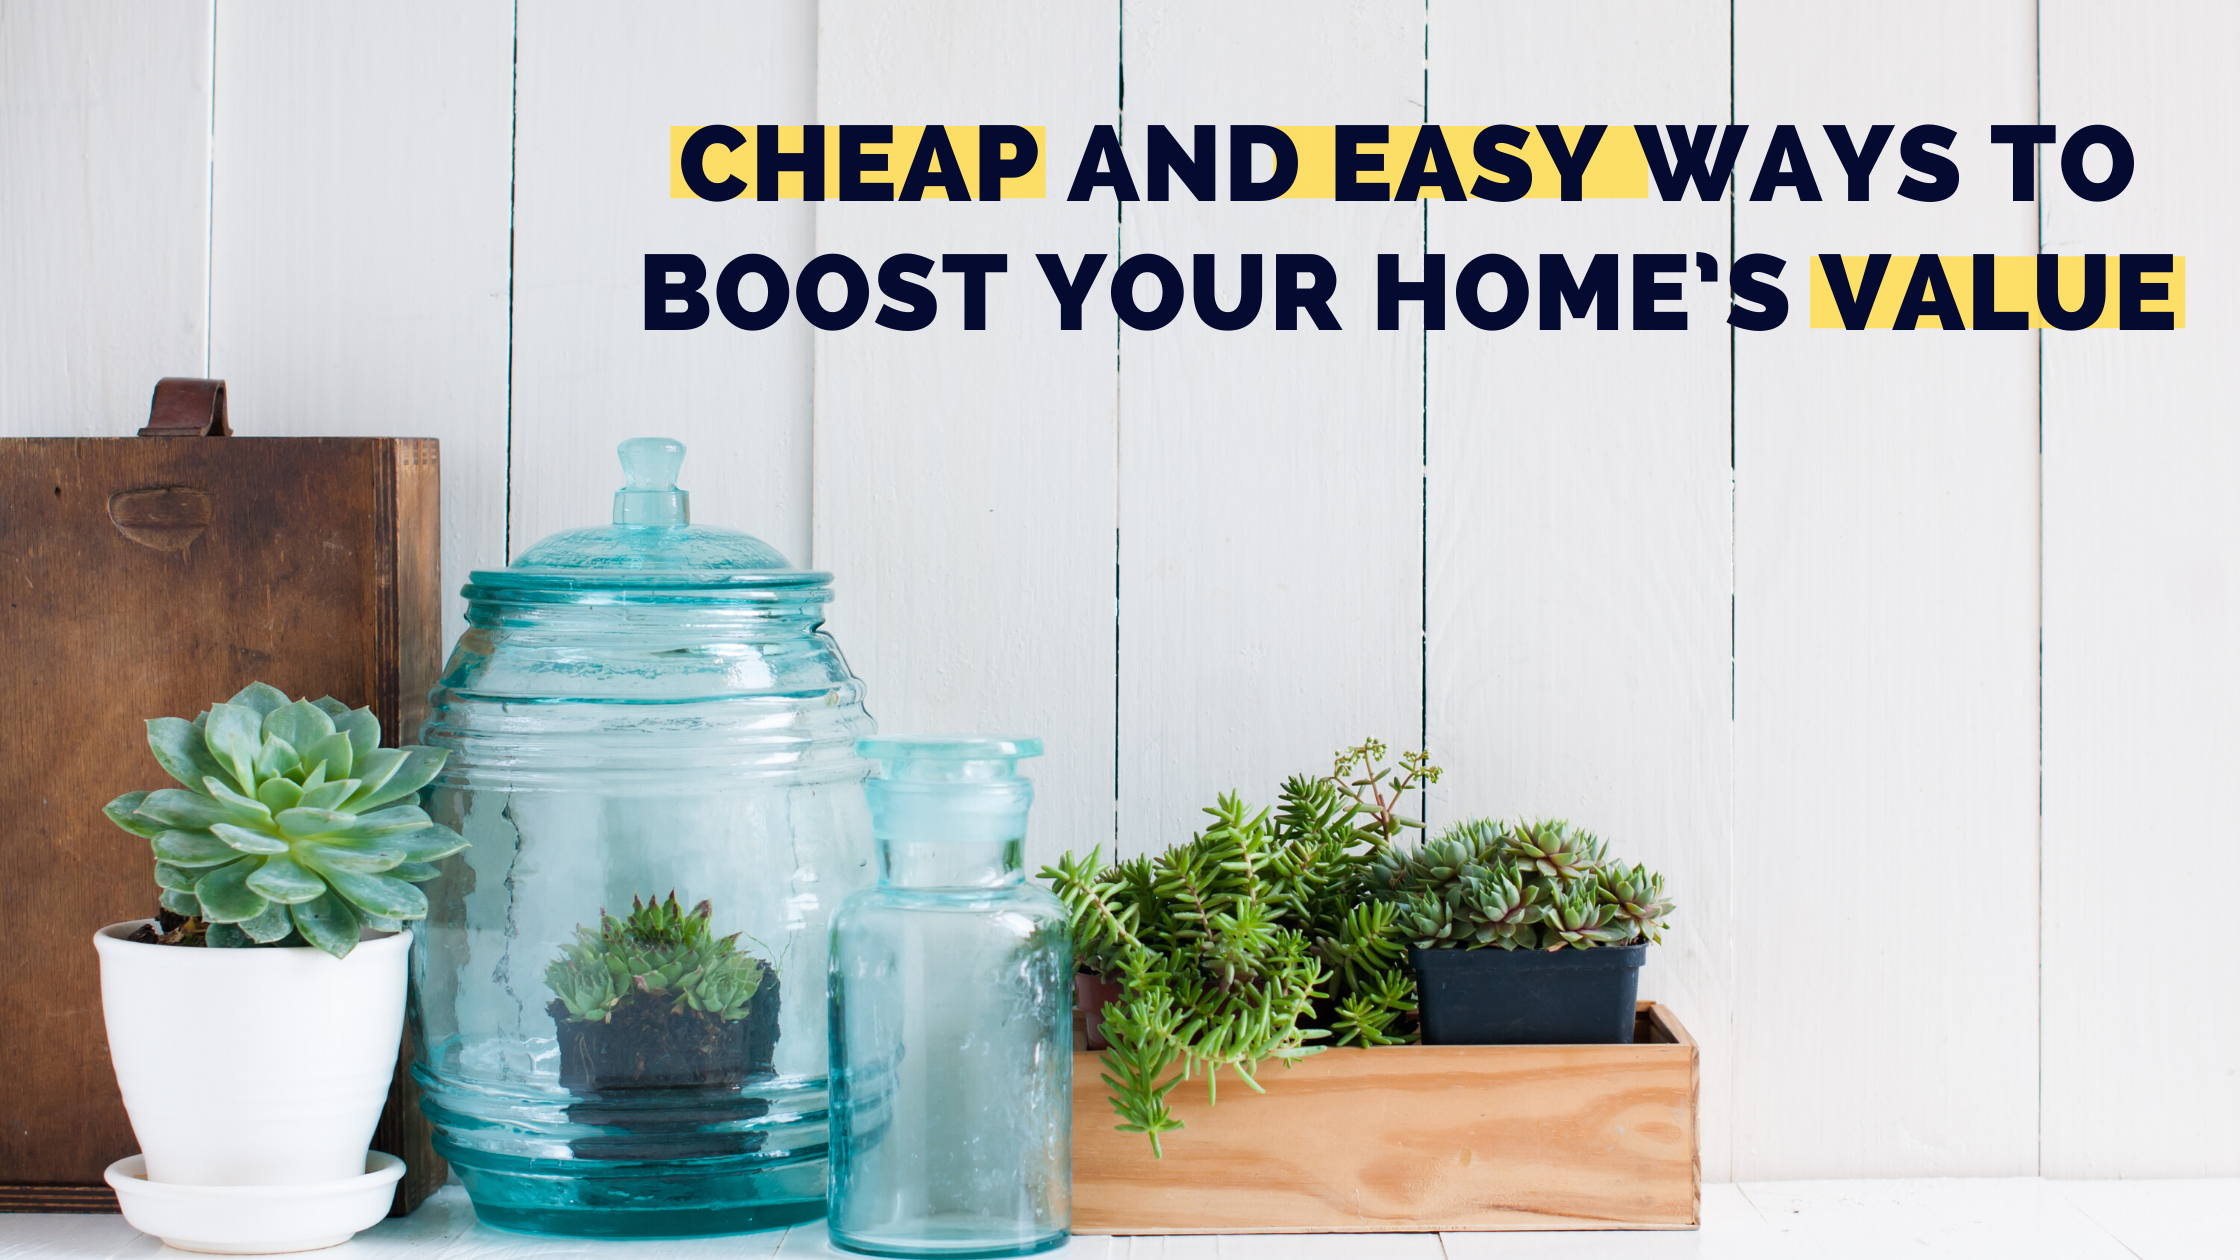 Cheap and Easy Ways to Boost Your Home's Value